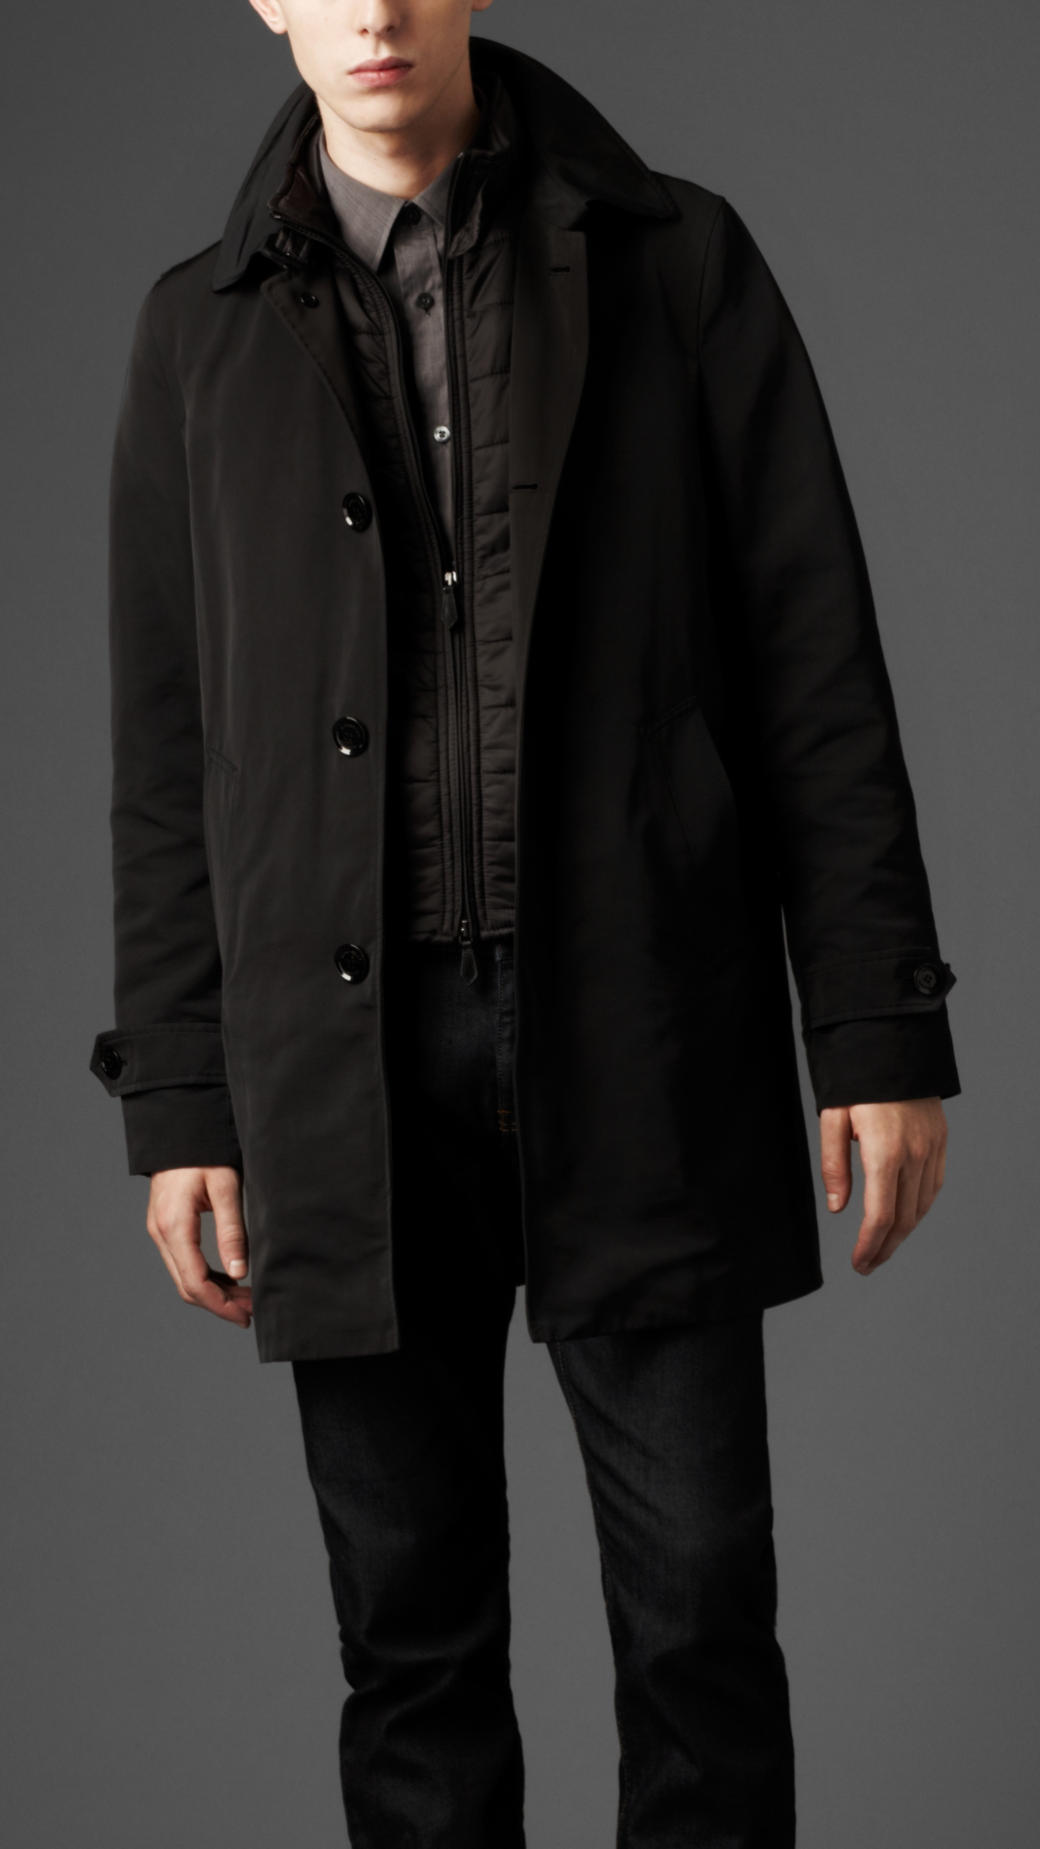 Black Car Coat - Black Coat